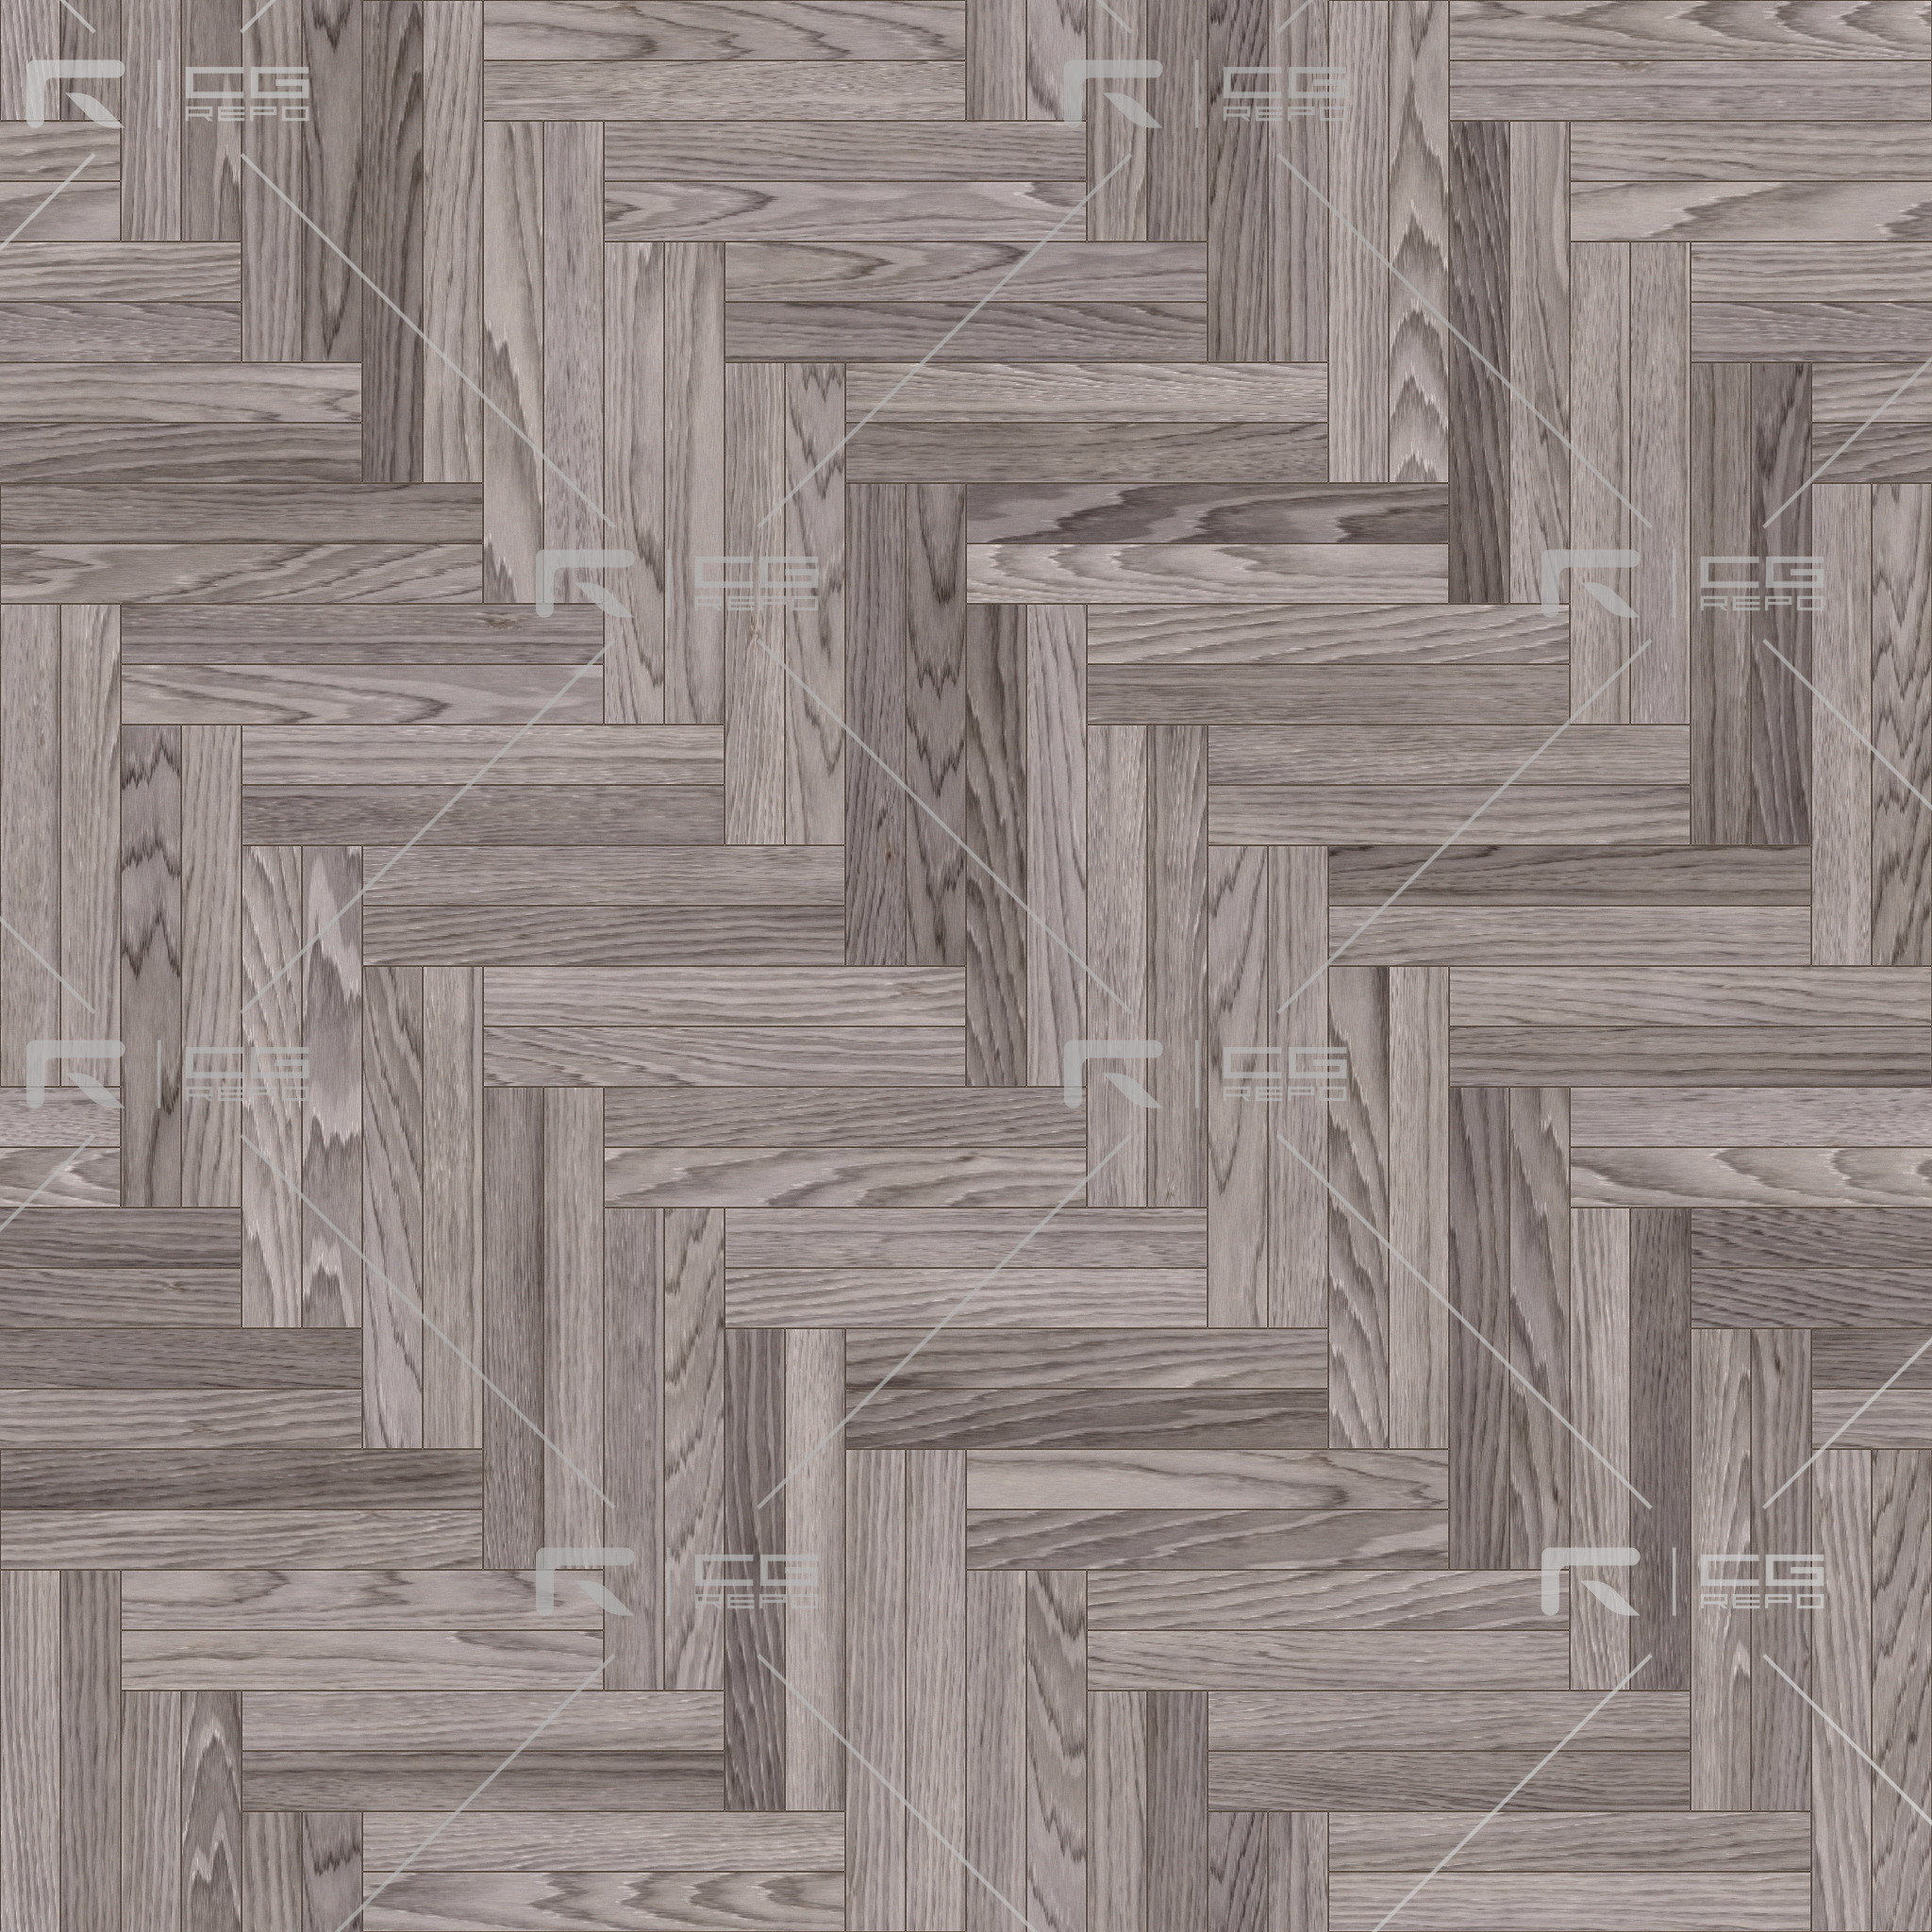 Oak Light Smoked Double Herringbone BaseColor Texture